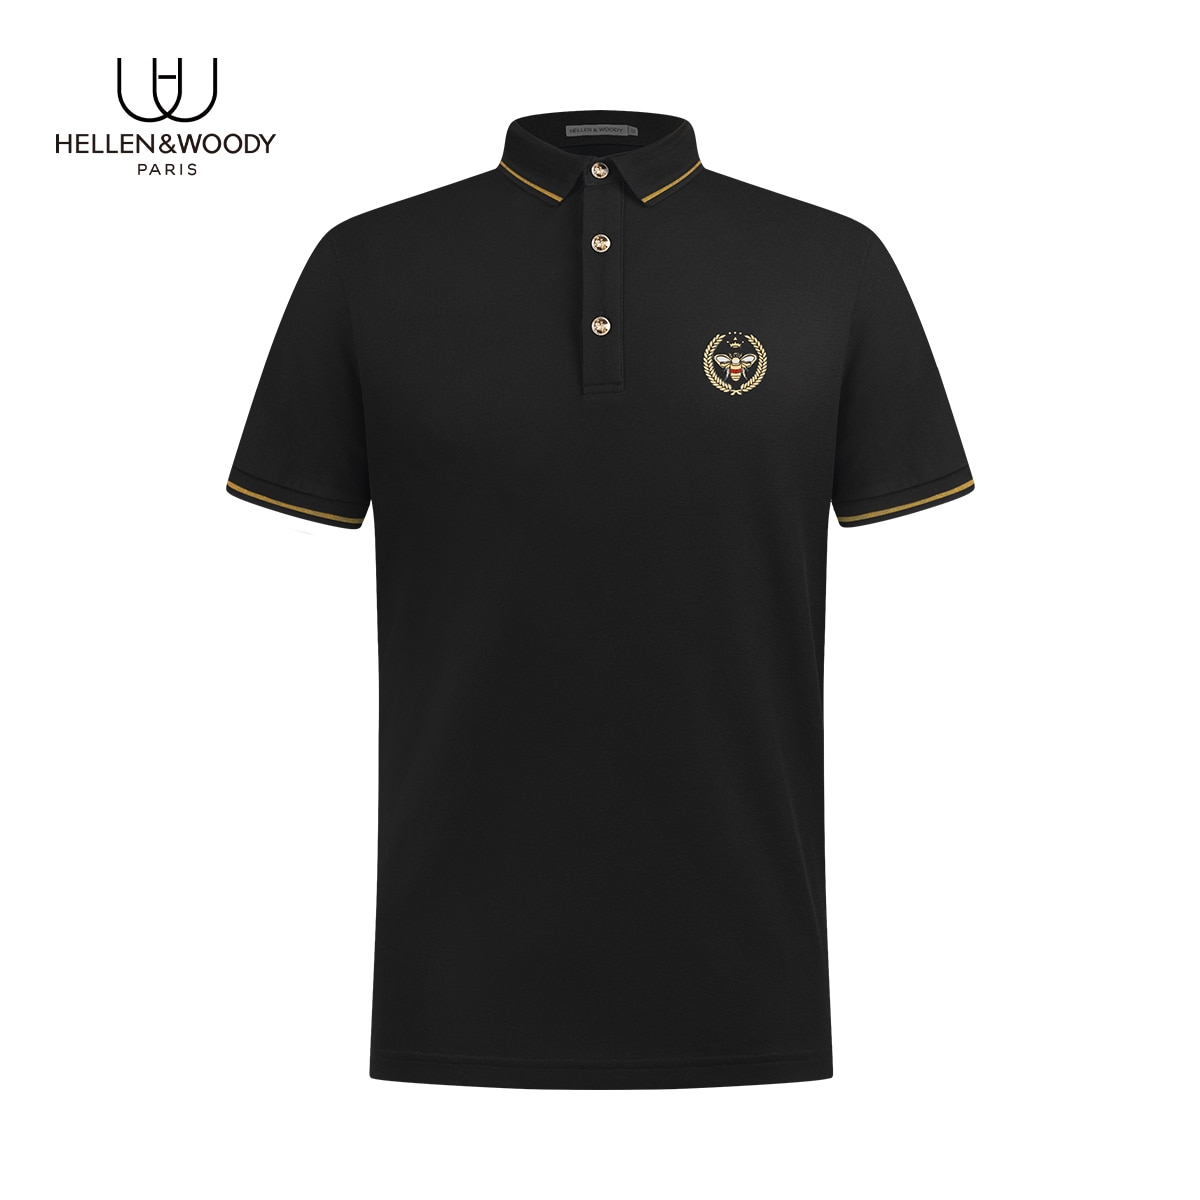 Hellen&Woody 21SS France Luxruy Brand Pure Cotton Fit Slim Bee Exquisite Embroidery Short Sleeve Top-Shirt For Man Polo Shirt